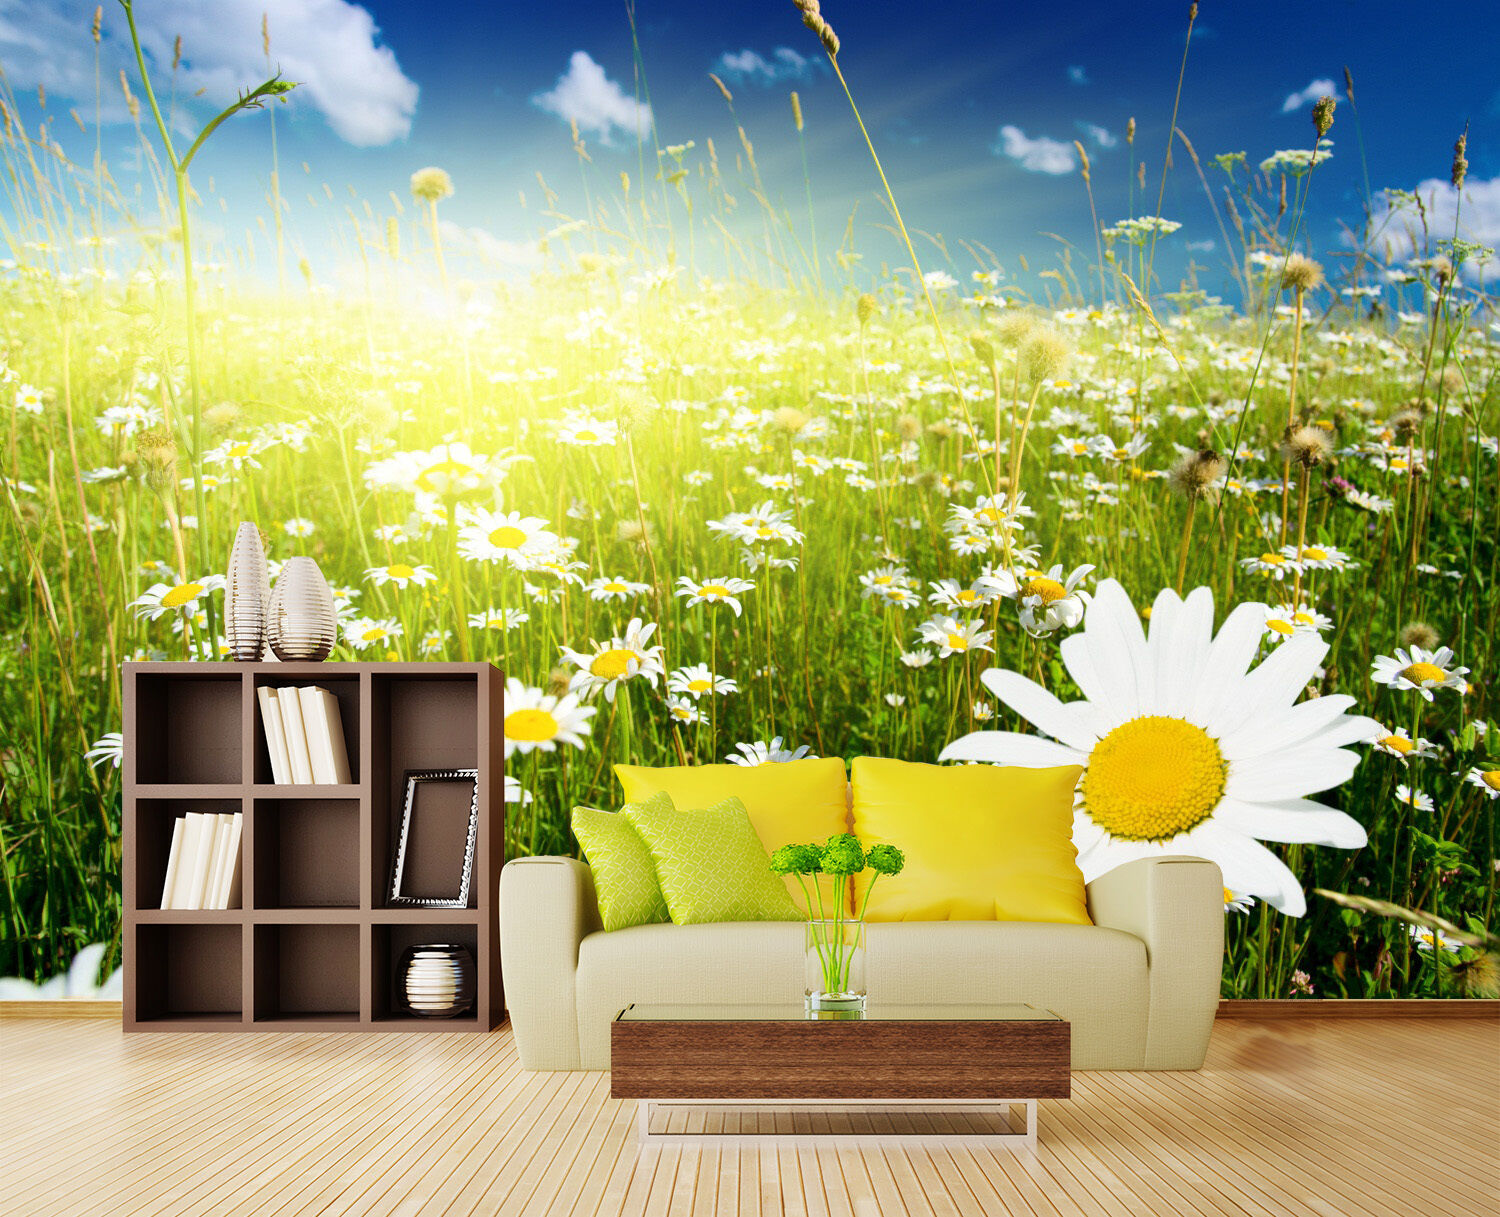 3D Grass flowers sky 356 Wall Paper Print Wall Decal Deco Indoor Wall Murals